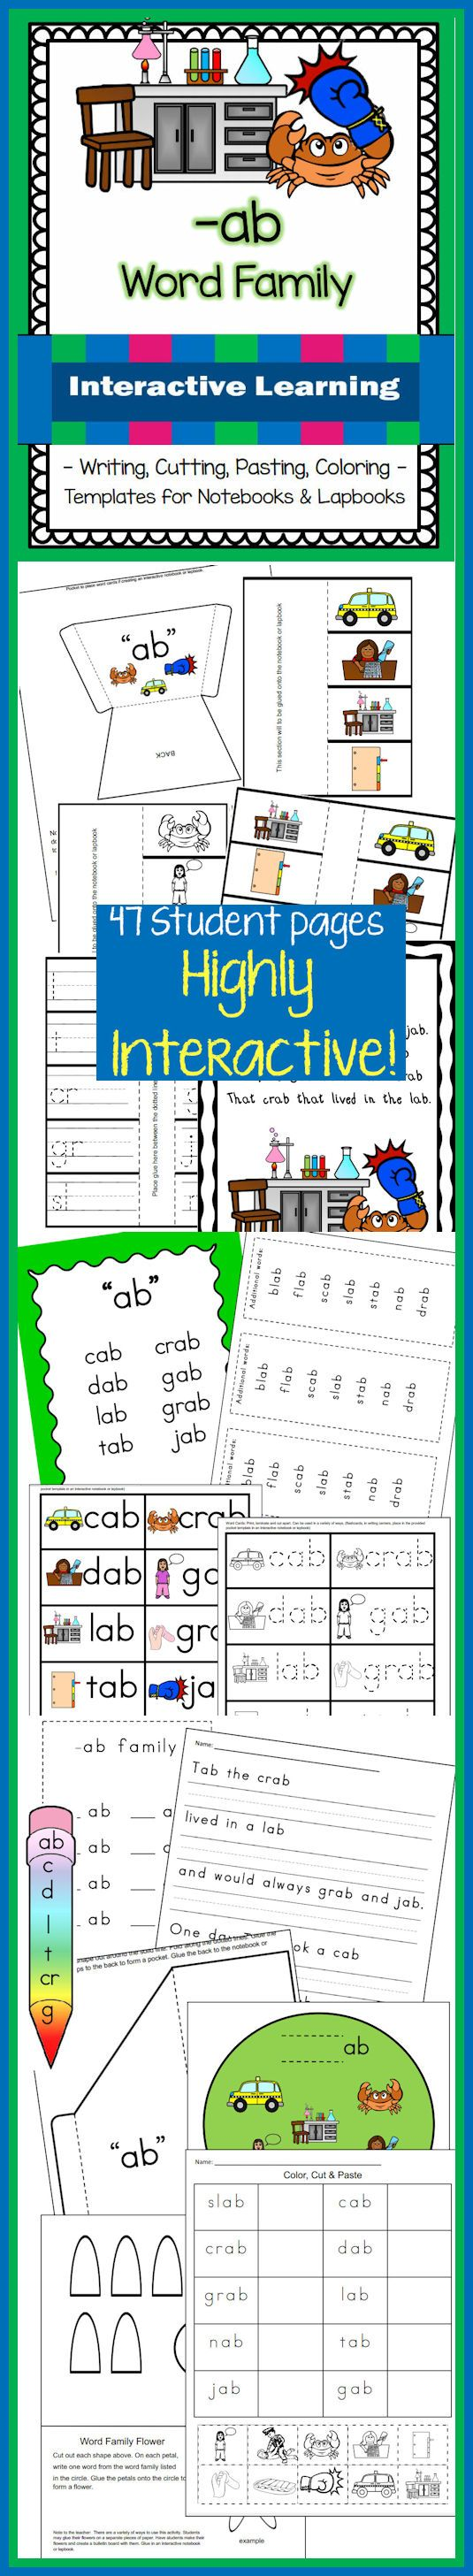 CAUTION: Fun, interactive learning contained within this unit with 47 student pages for students to color, cut, paste, and write!  Topic: -ab Word Family Contains: Flashcards Puzzle Cards Templates for interactive notebooks, lapbooking and/or center activities Worksheets for matching, writing, cut and glue Mini-Book PLUS a template for students to create the own Posters